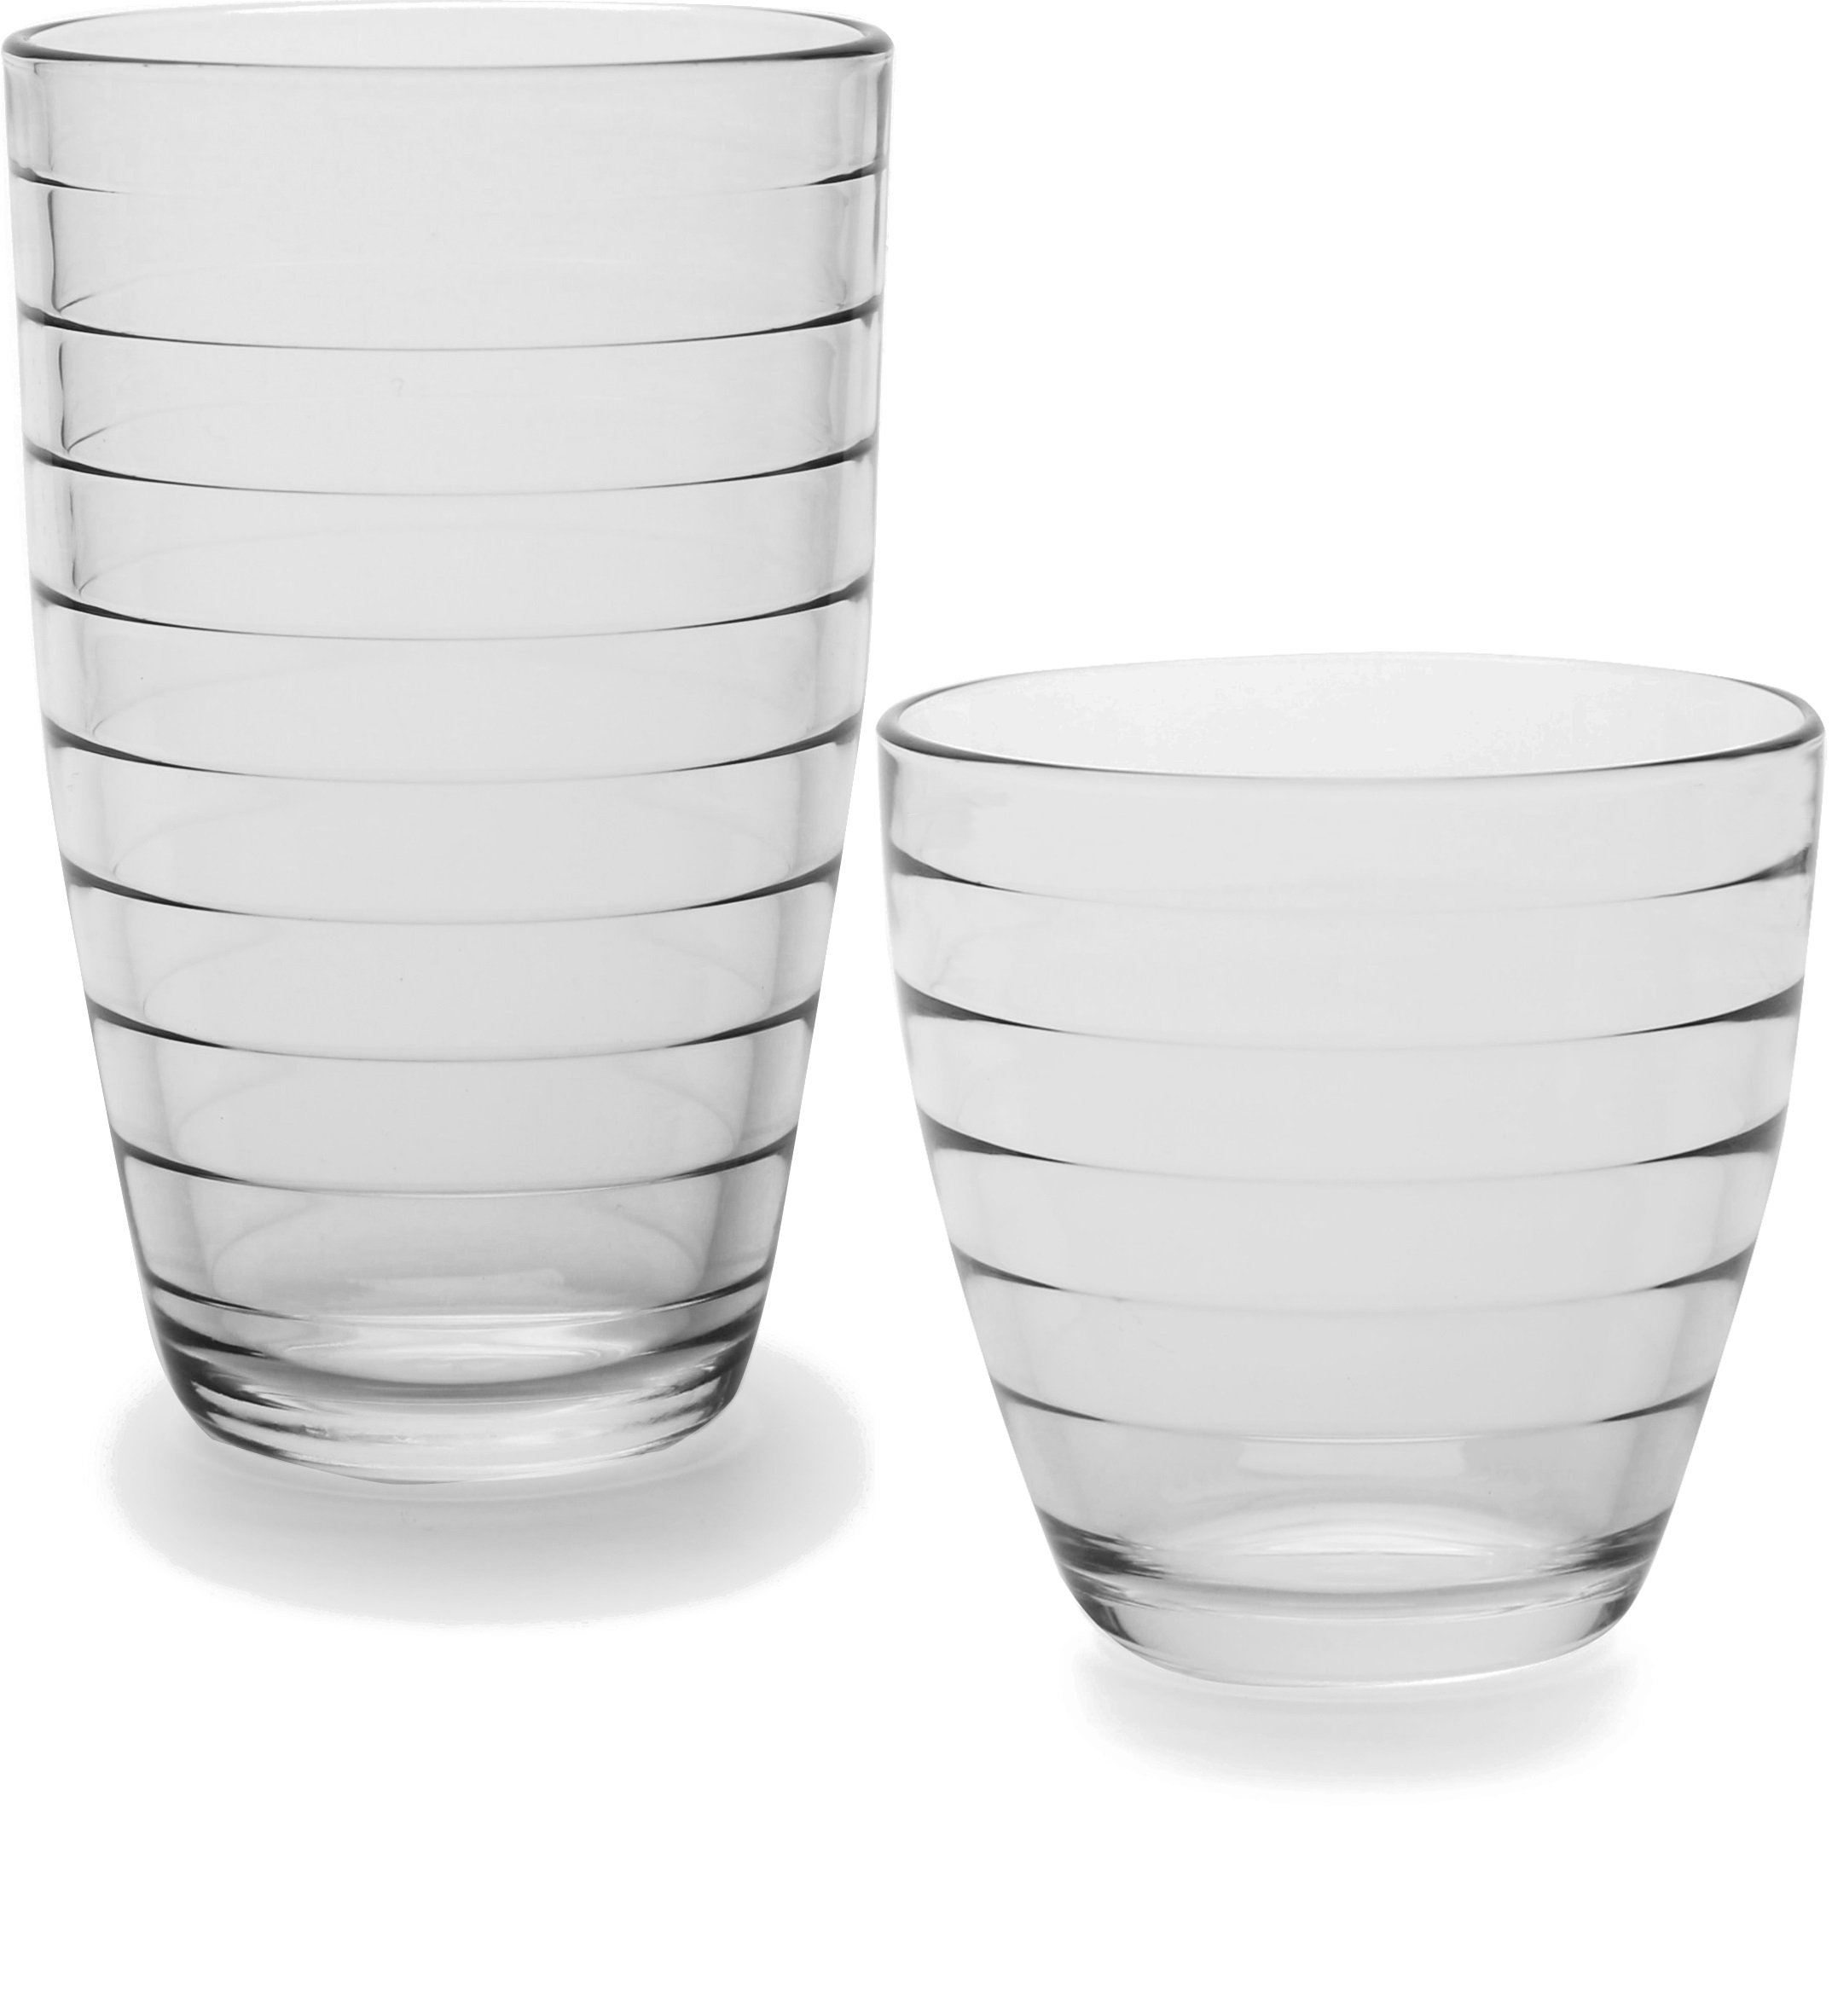 Circleware Ring Huge Set of 16 Drinking Glasses, 8-16oz and 8-13oz Double Old Fashioned Whiskey Glass